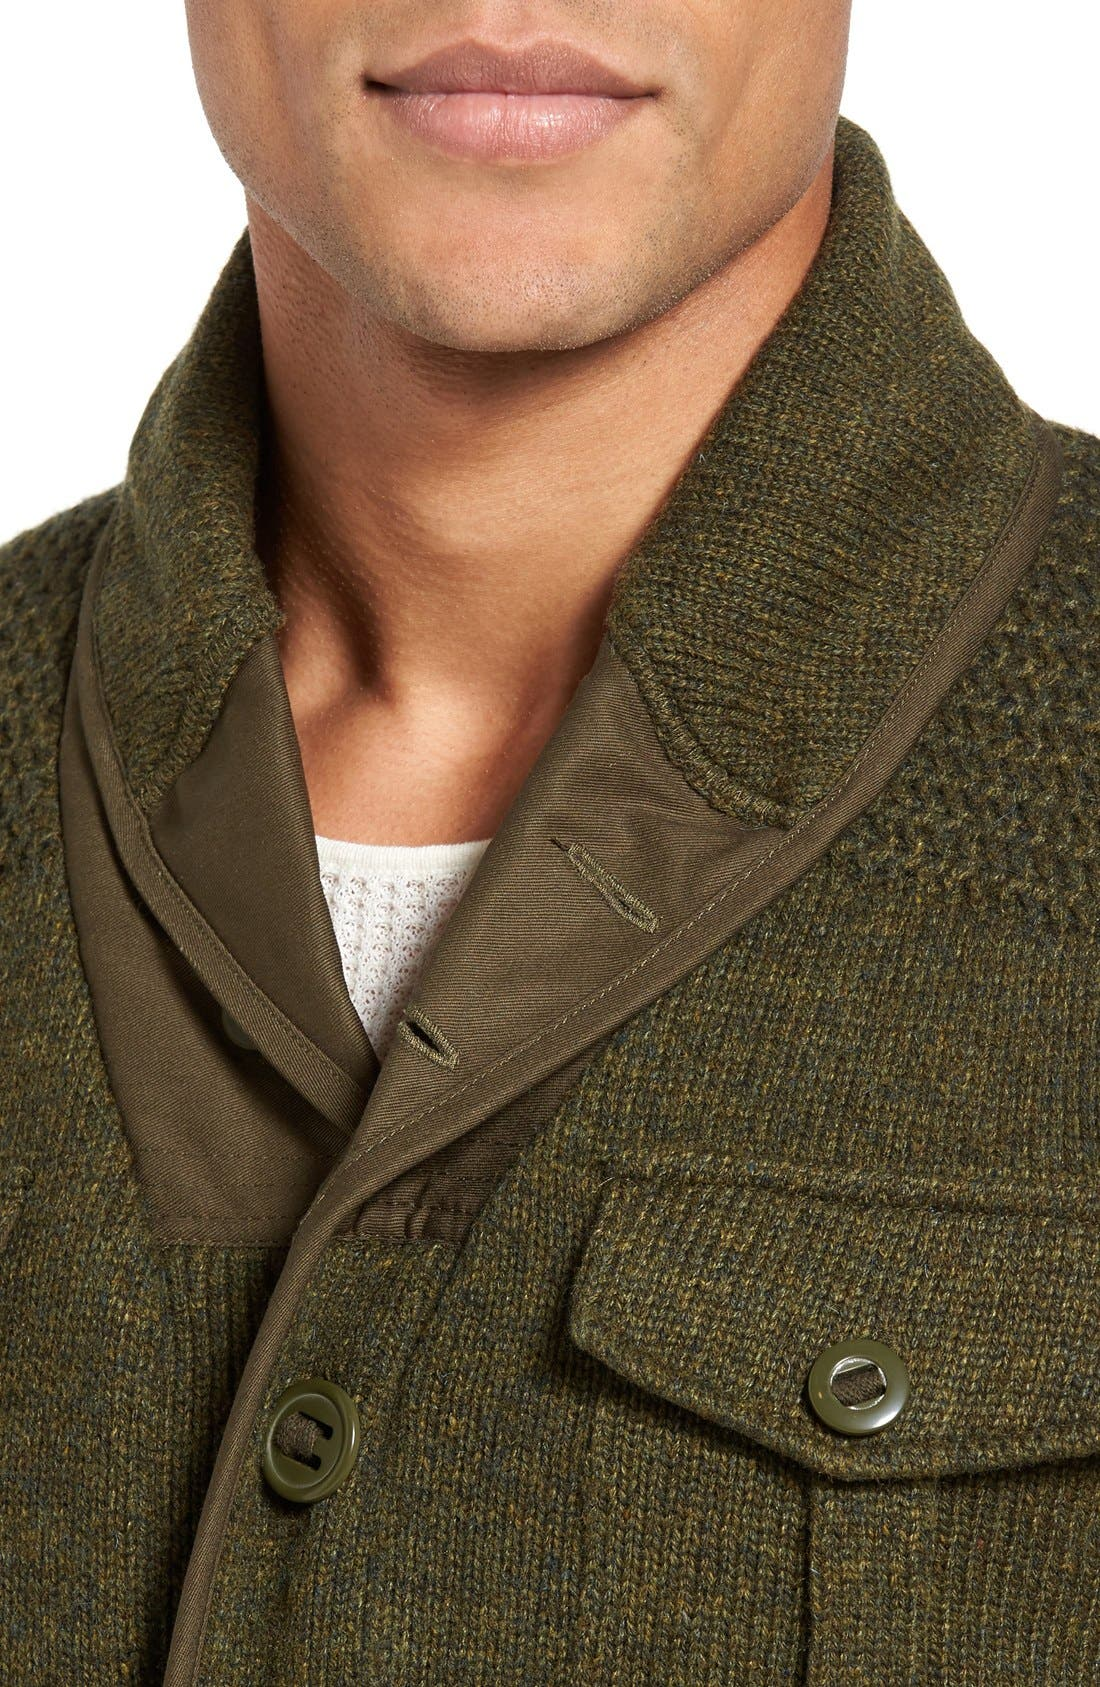 Military Sherpa-Lined Sweater Jacket,                             Alternate thumbnail 18, color,